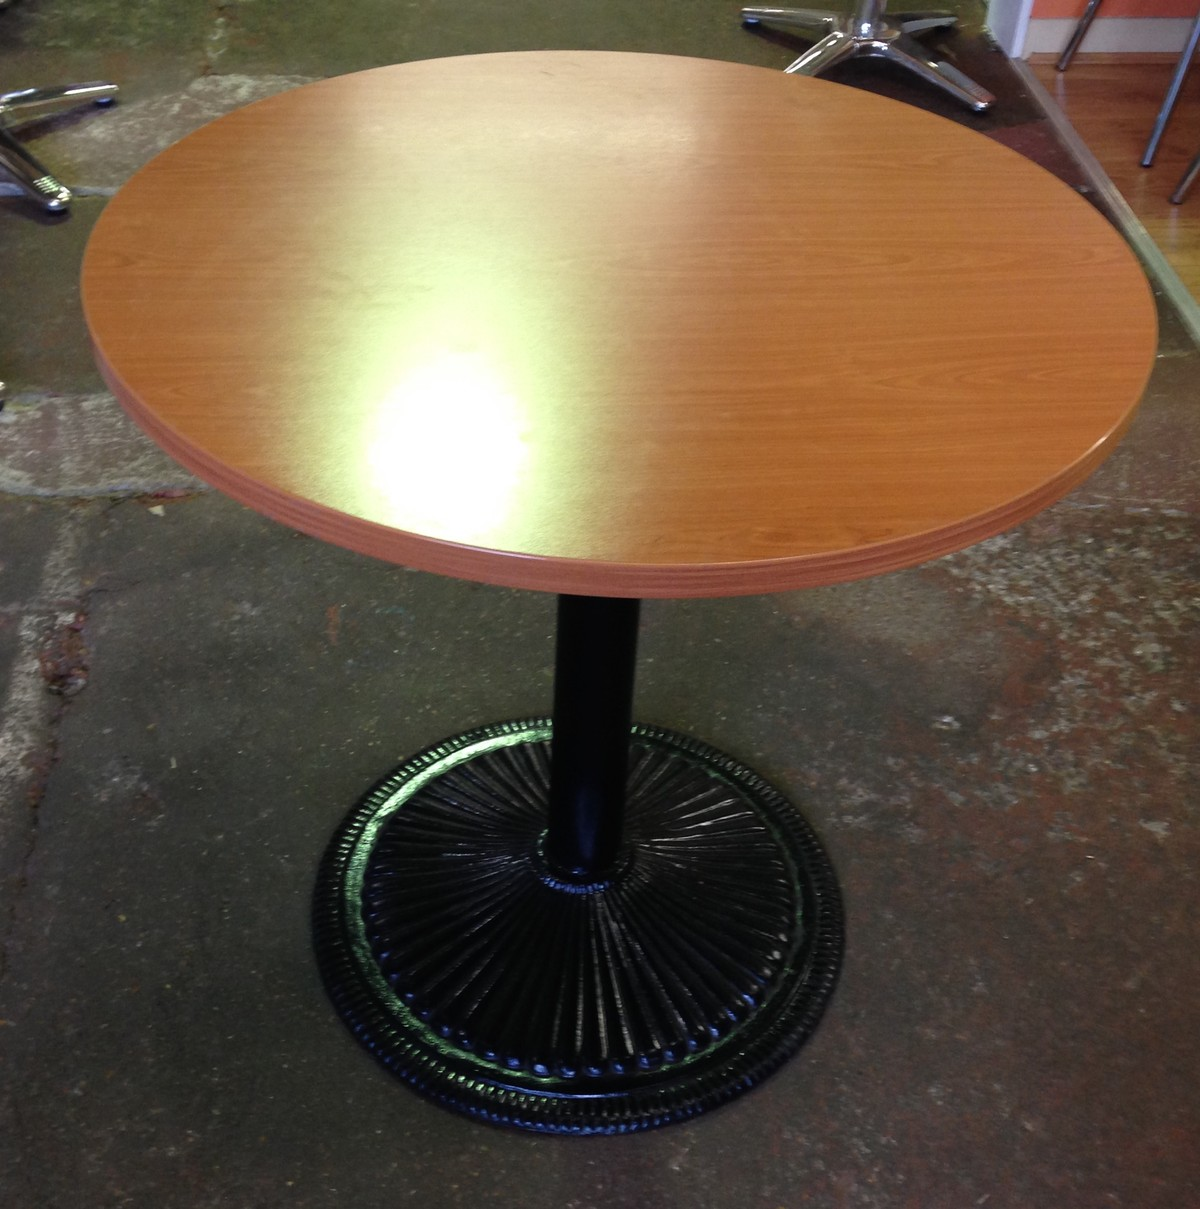 Secondhand catering equipment global tables and chairs for Round teak table top